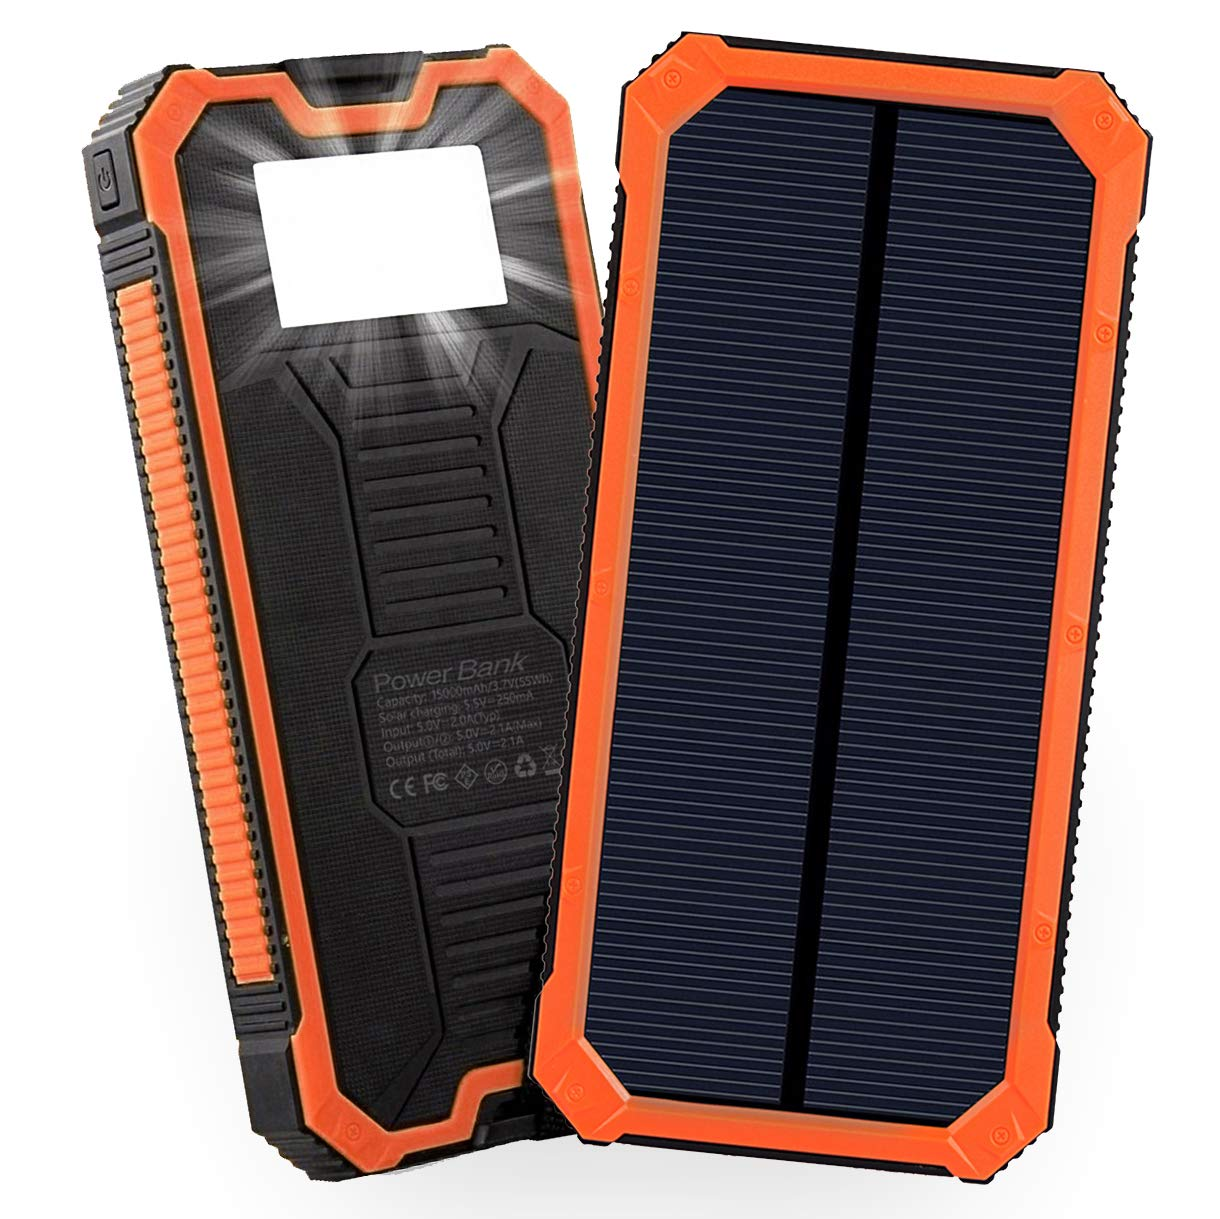 Solar Power Bank 15000mAh Friengood Portable Solar Phone Charger with Dual USB Ports, Solar External Battery Charger with 6 LED Flashlight for Cell Phone, Tablet, Camera and More (Orange) by Friengood